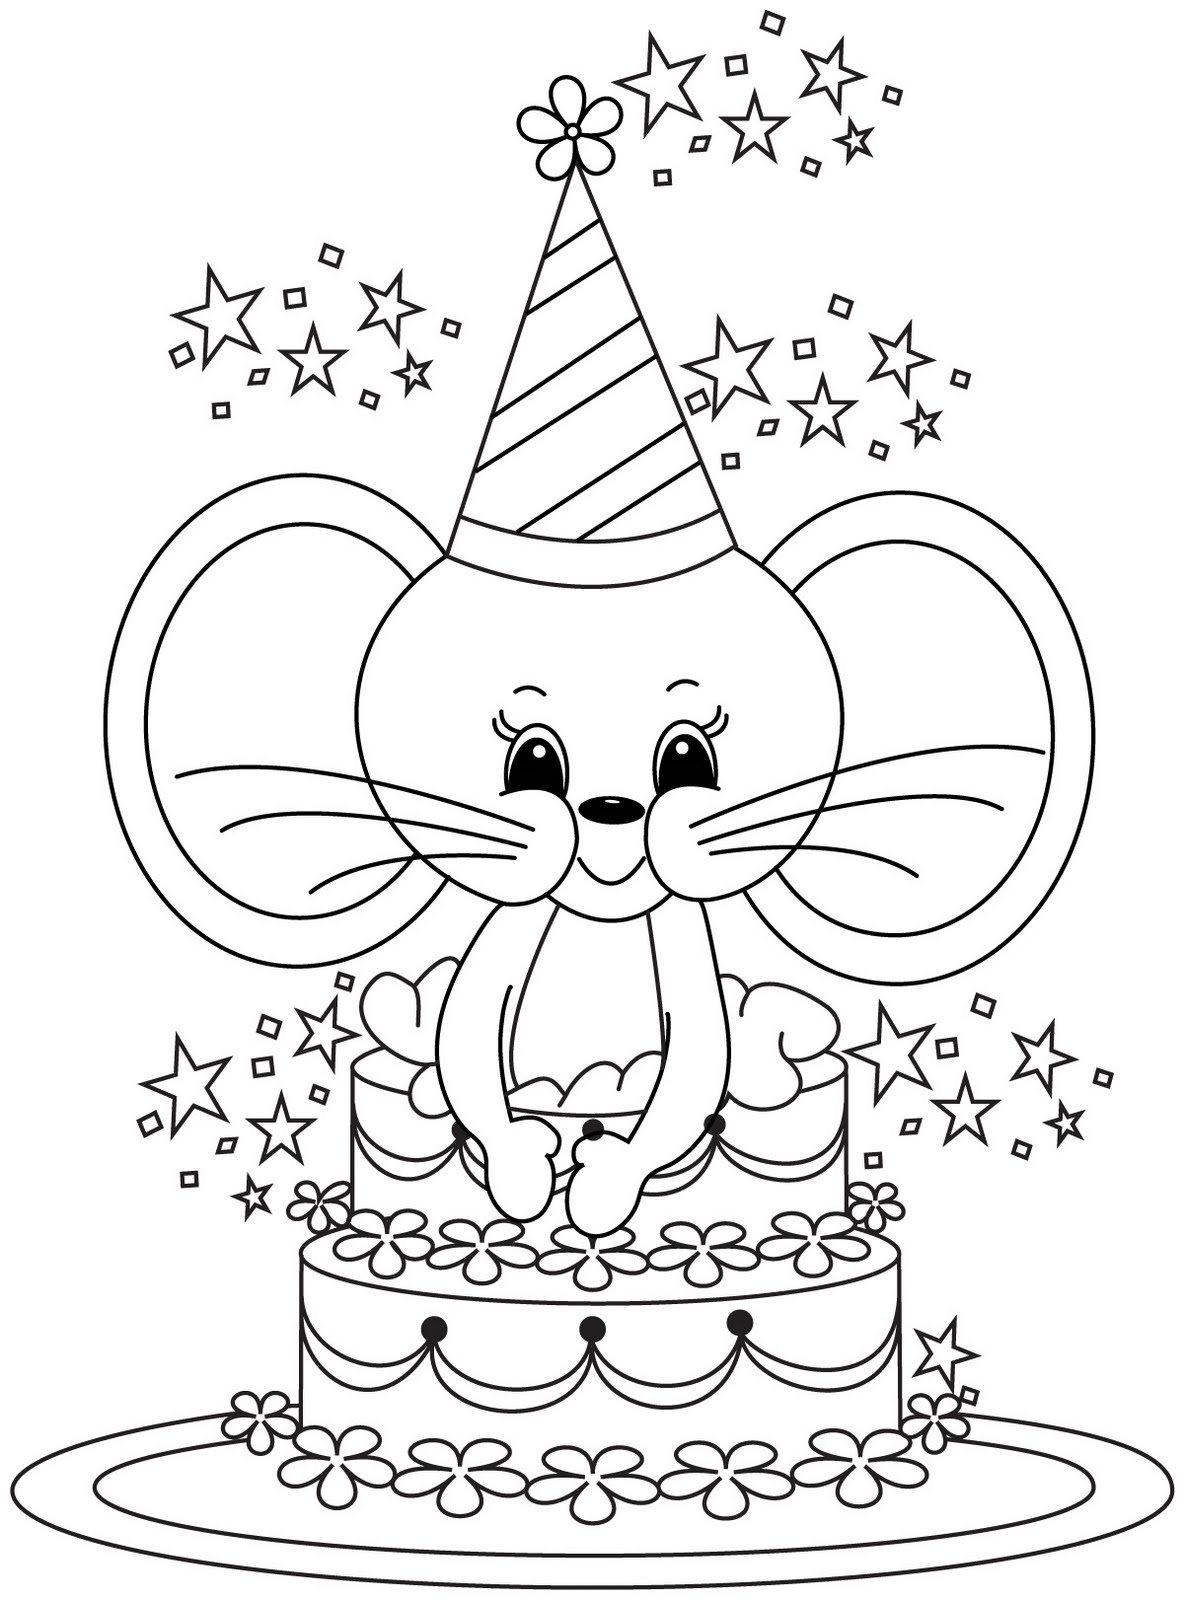 1184x1600 From Crayons To Copics Card Making Ideas, Free Designs Digital